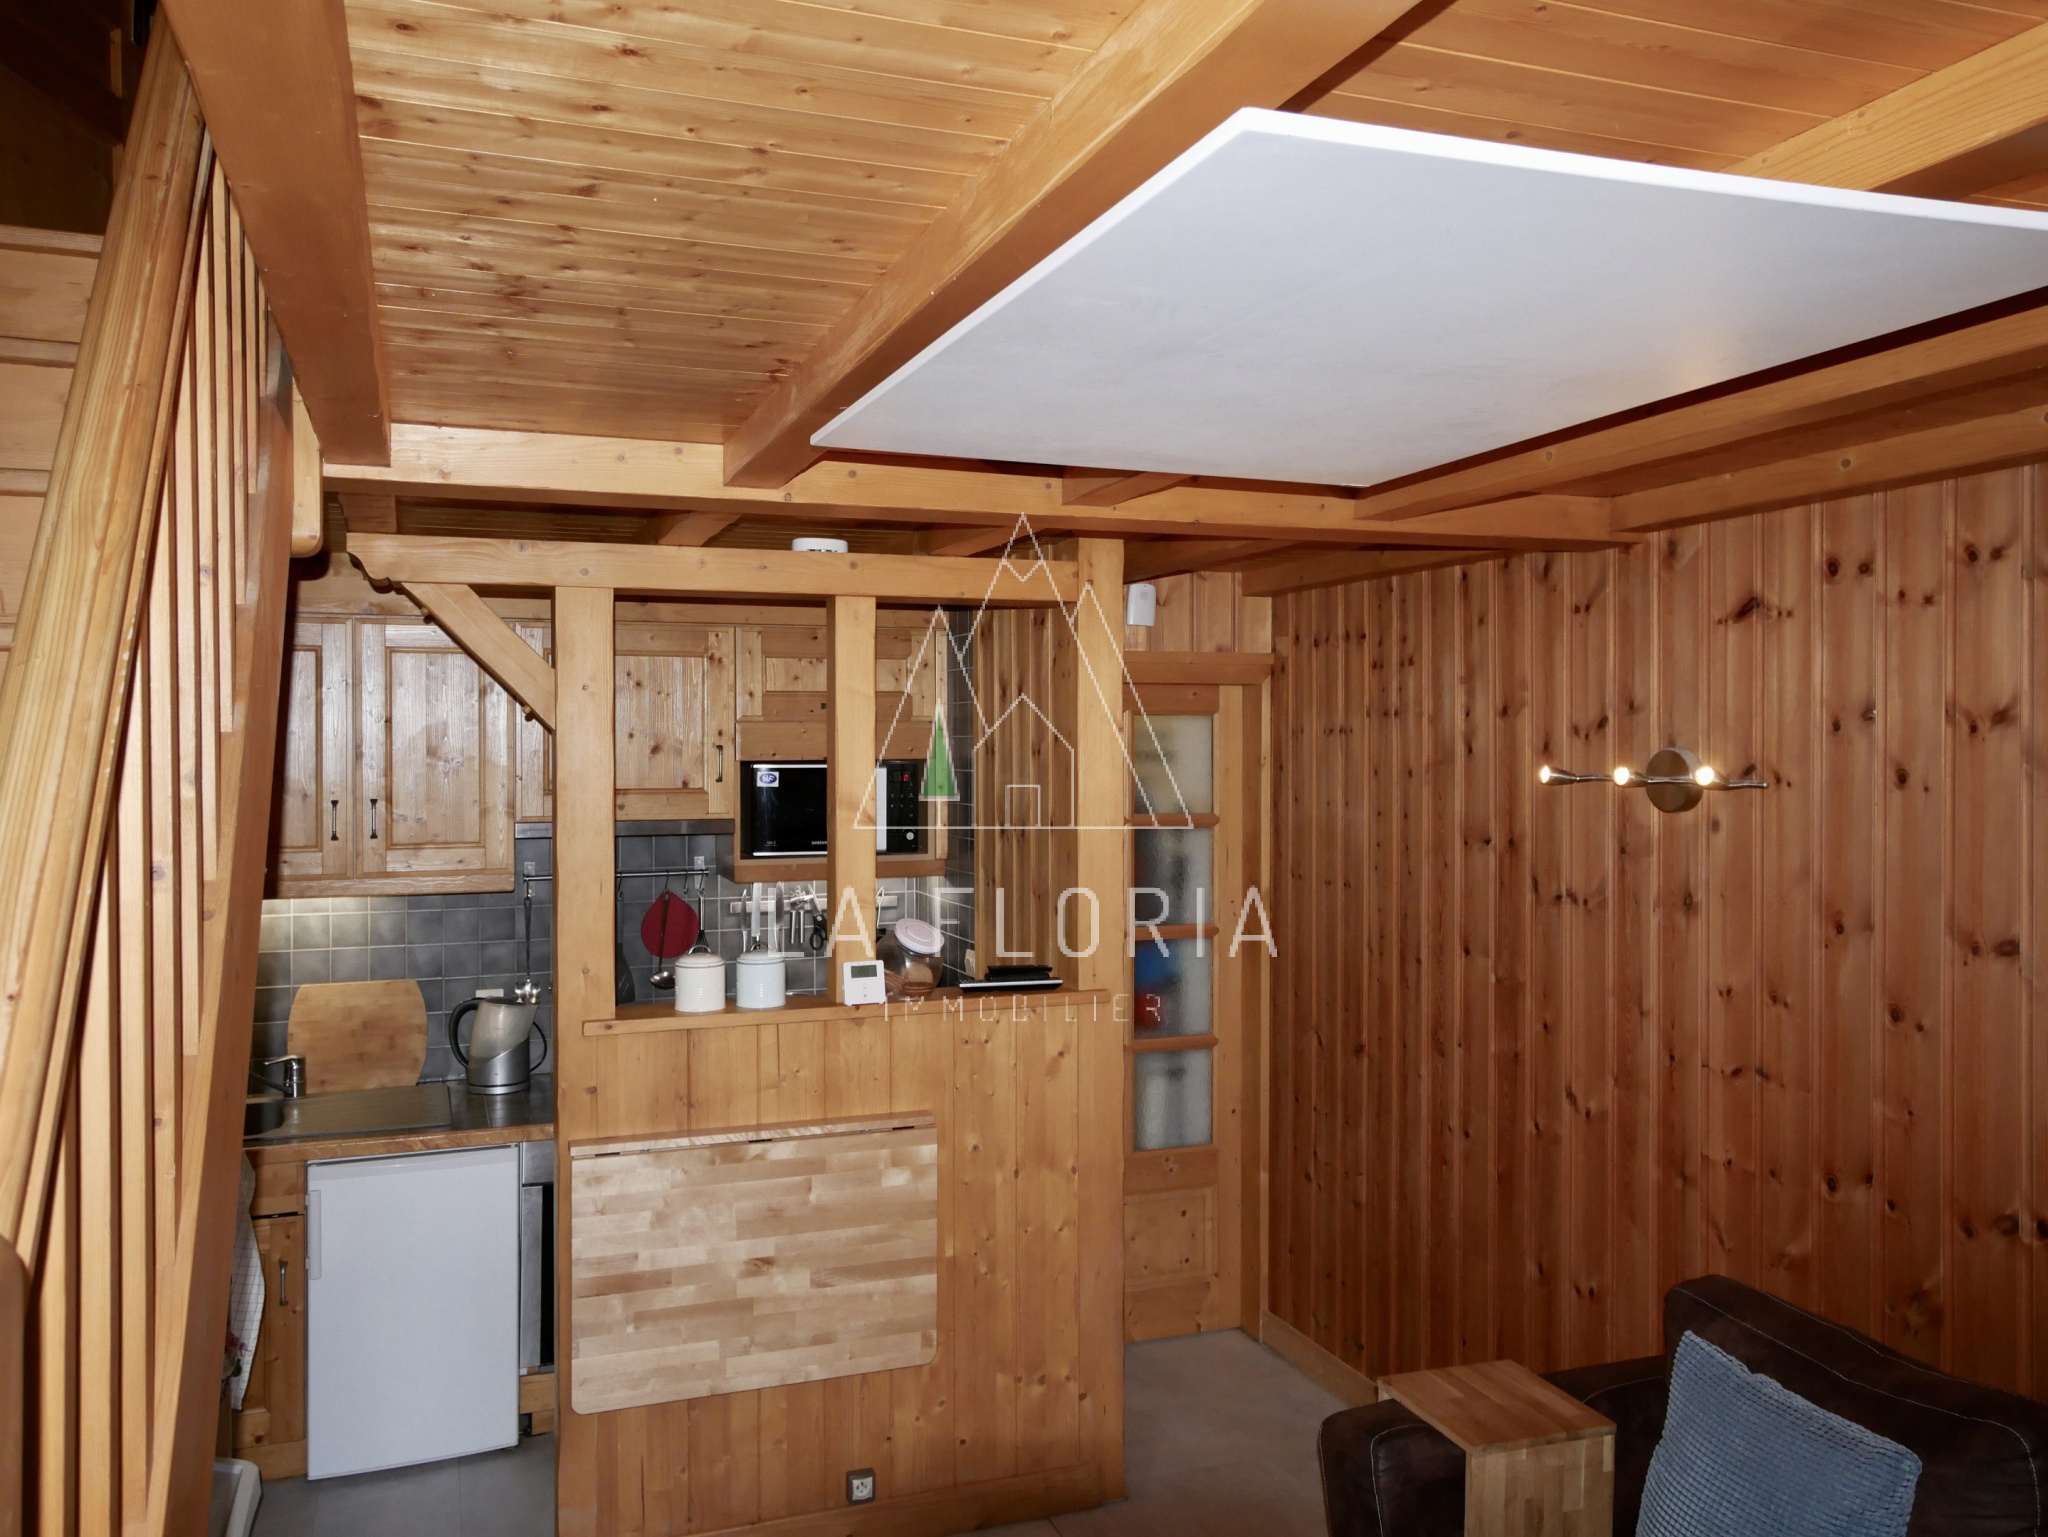 TWO BEDROOM DUPLEX APARTMENT WITH A GARDEN, CHAMONIX